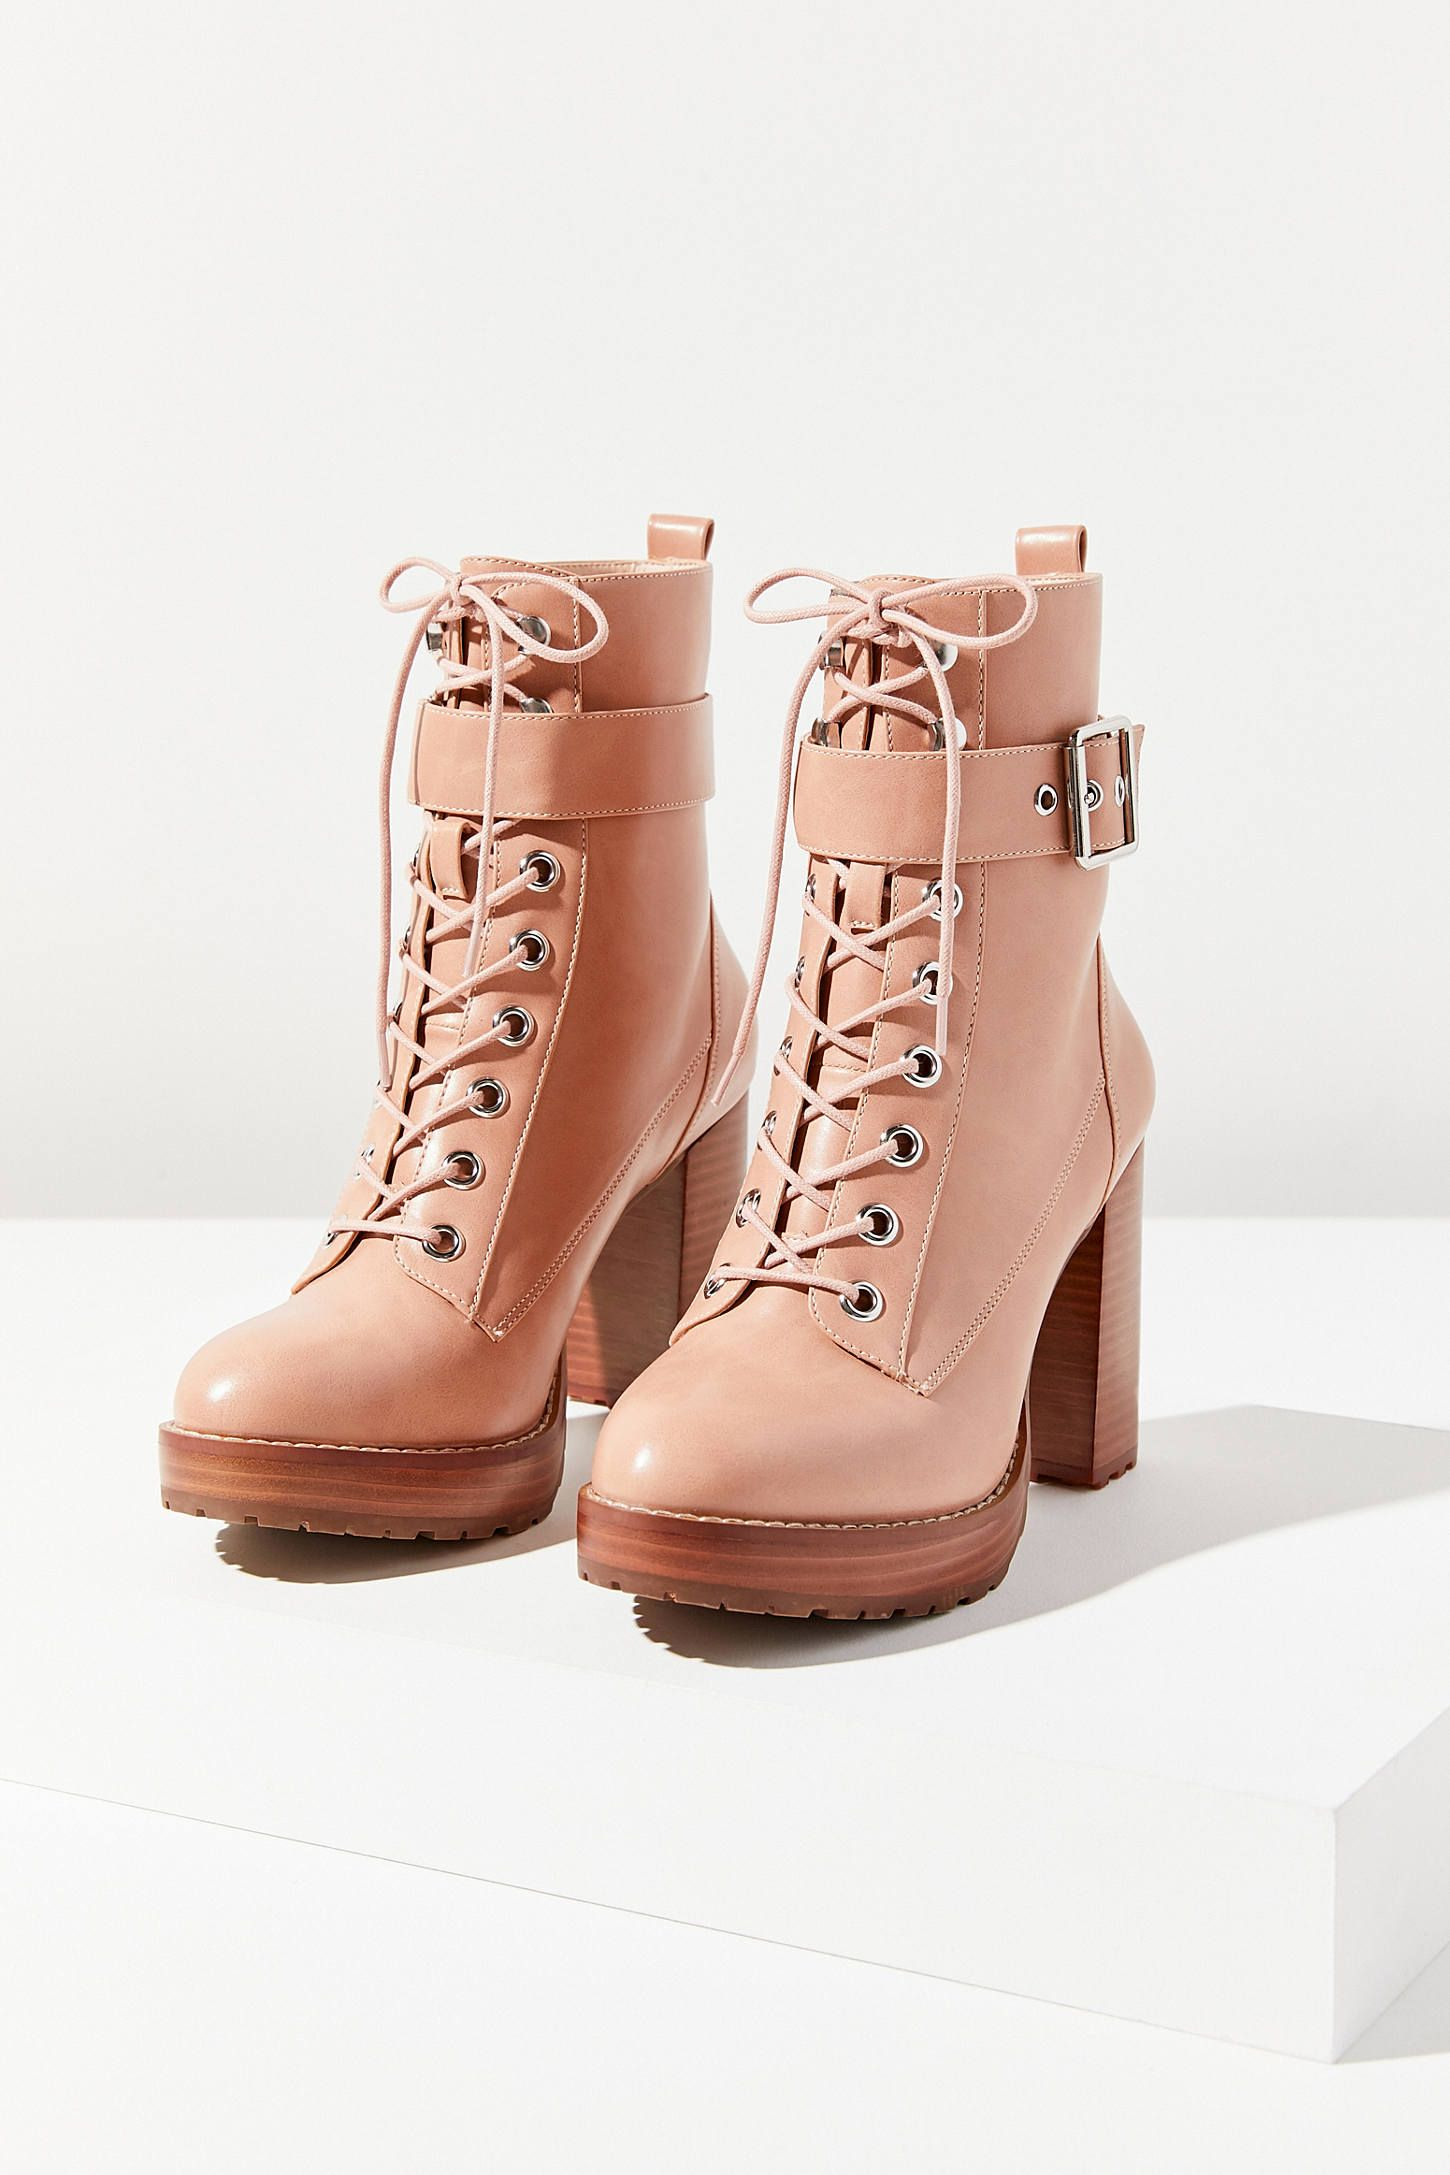 36237f01623 UO Kennedy Heeled Lace-Up Boot   Garfts   Boots, Bootie boots, Shoe ...